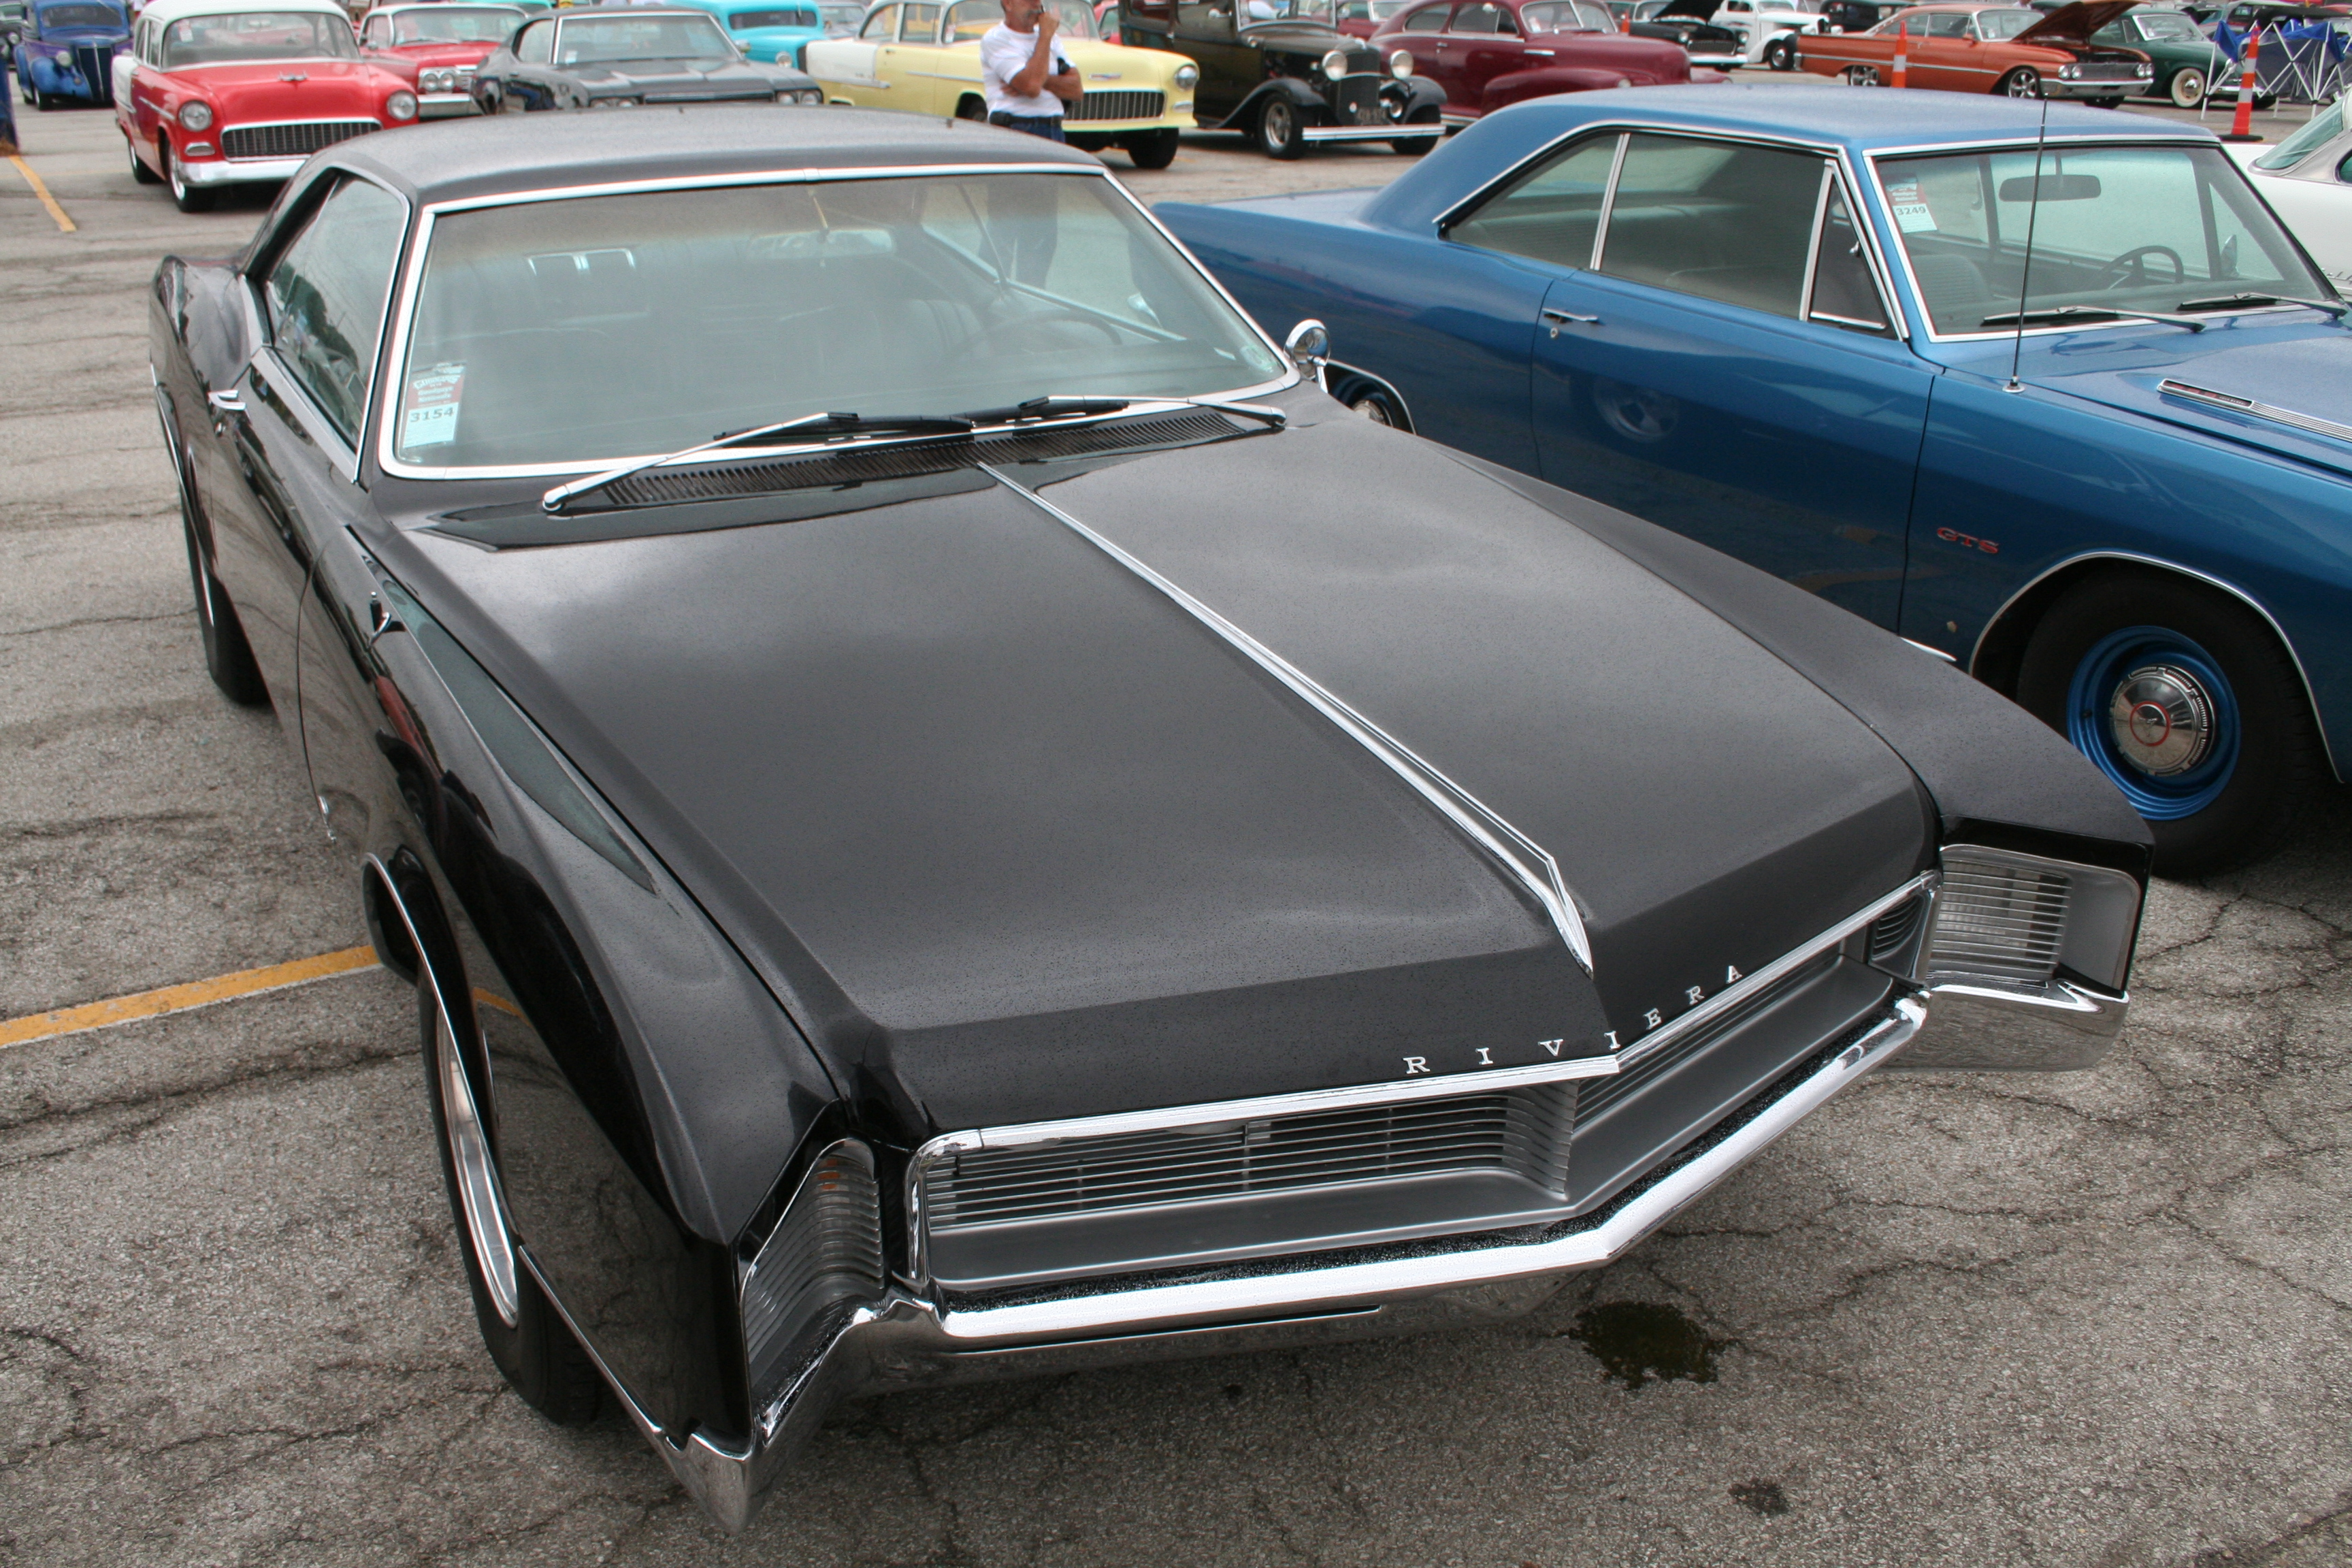 1966 buick riviera the meanest looking cars of all time pinterest buick riviera buick and cars